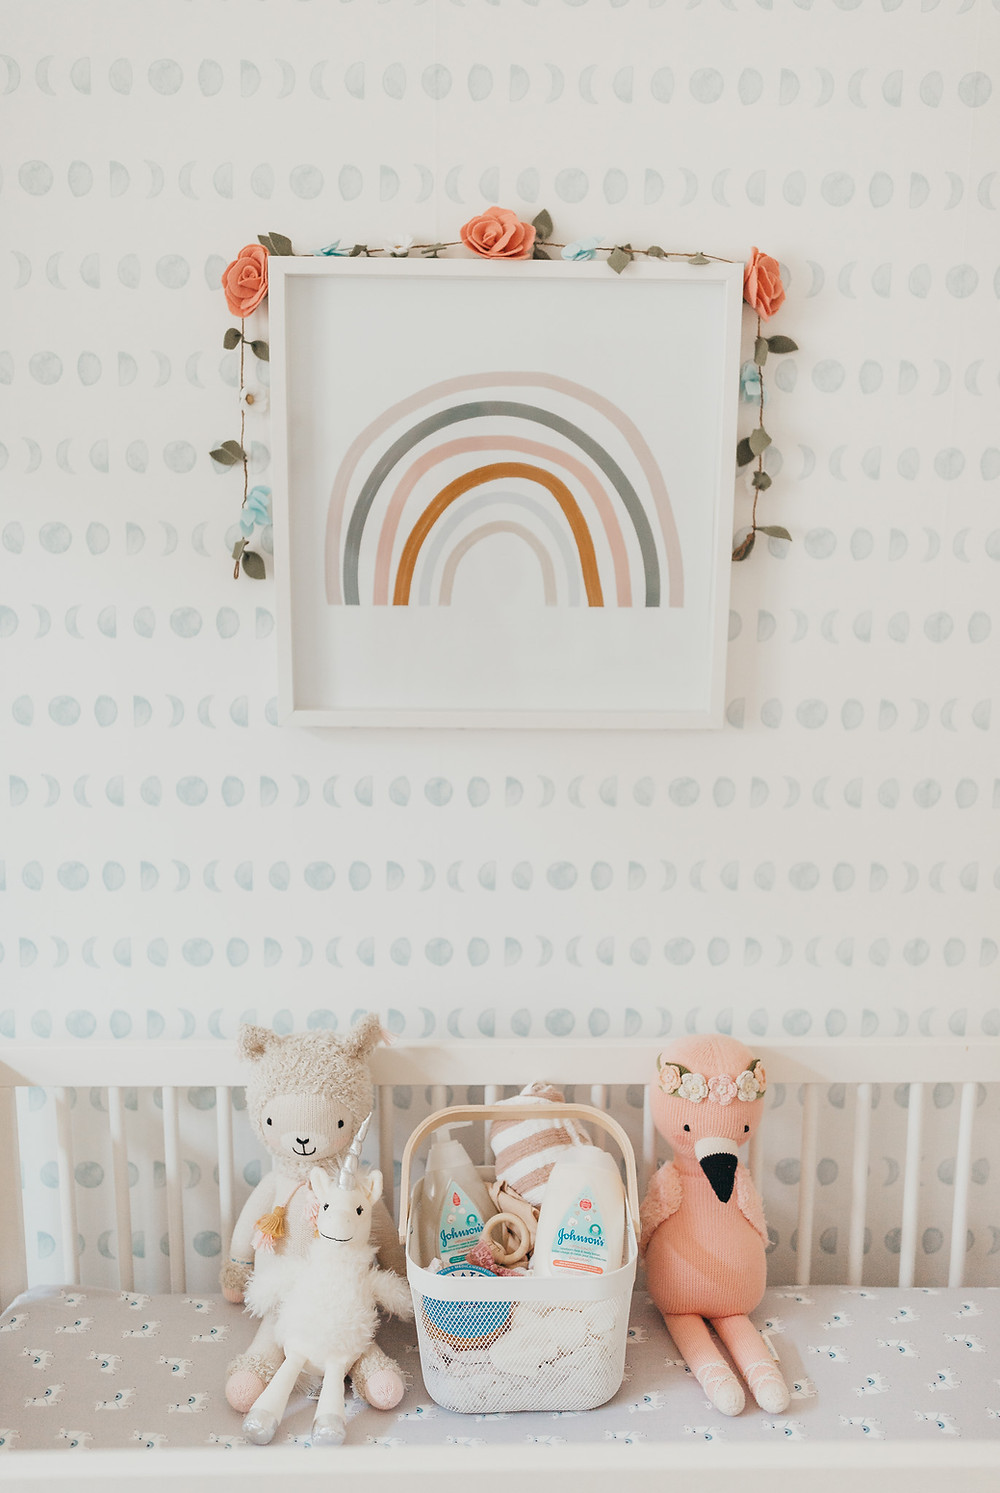 Some baby products and stuffed animals sitting in a crib with a rainbow print framed on the wall behind.